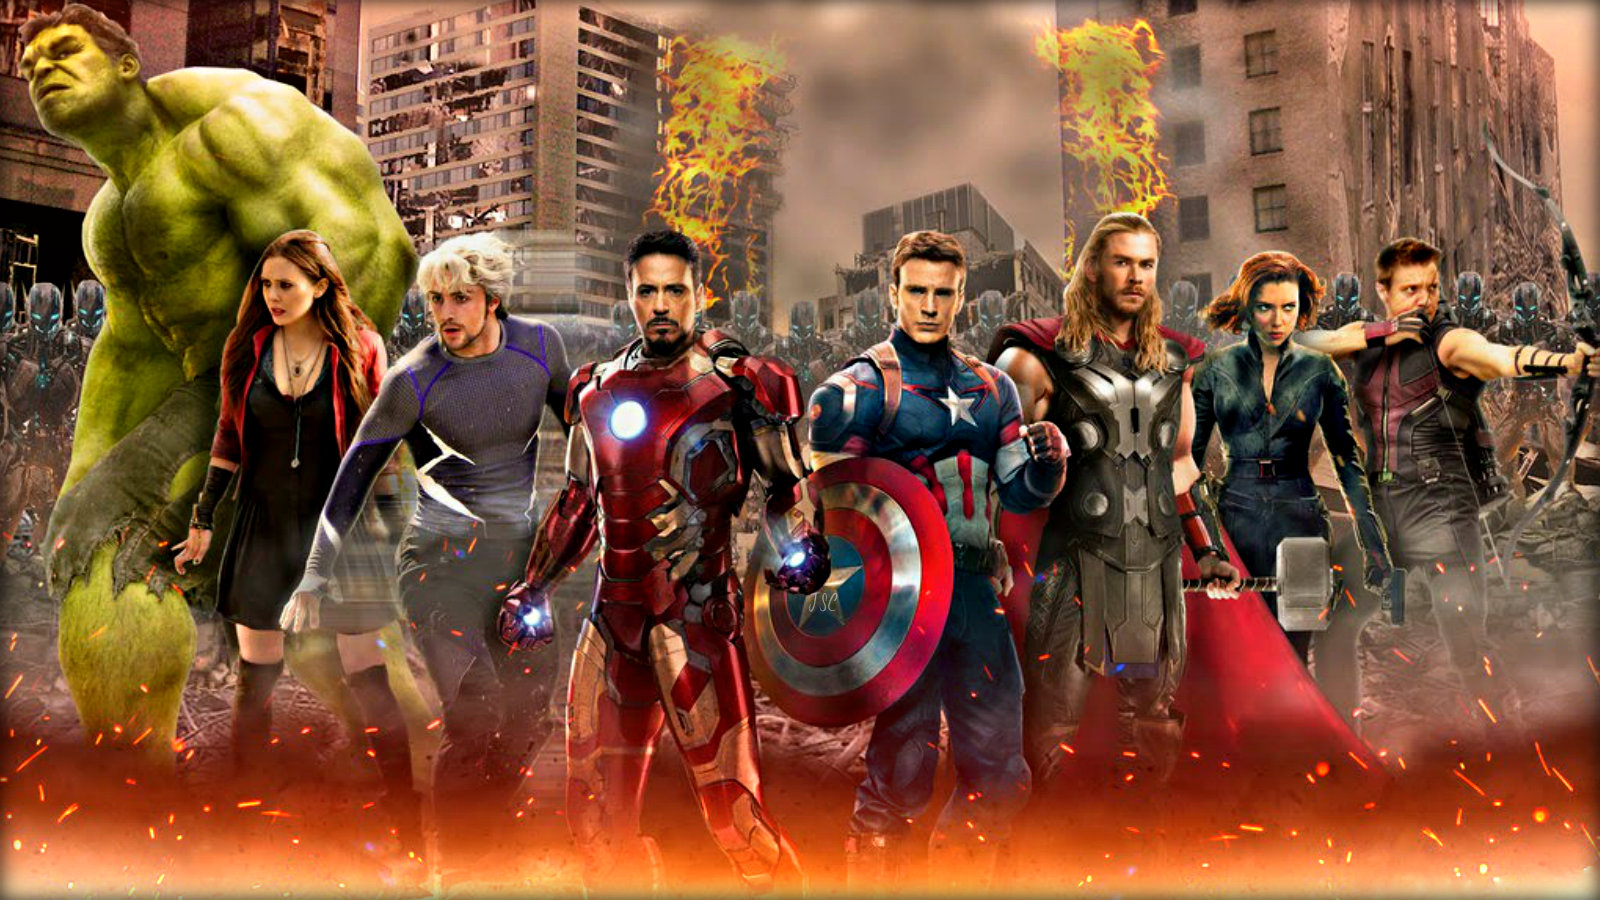 Amazing Wallpaper Marvel Avengers Age Ultron - lOsWyi  You Should Have_85665.jpg